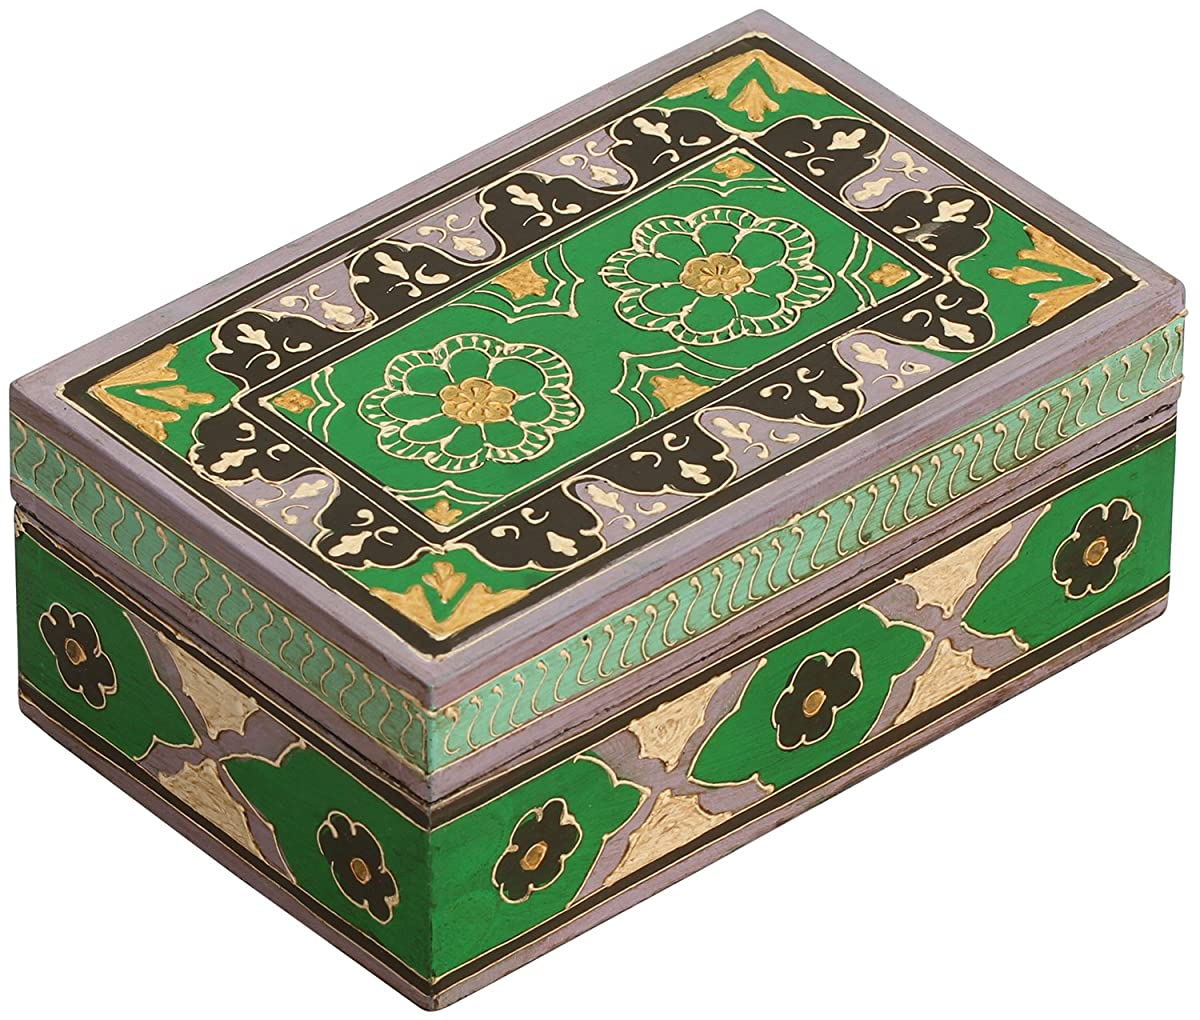 Wooden Jewelry Box – Handmade / Hand-Painted Treasure Chest / Decorative Box – Multicolor / Keepsake / Trinket / Storage Box - Gifts for Her